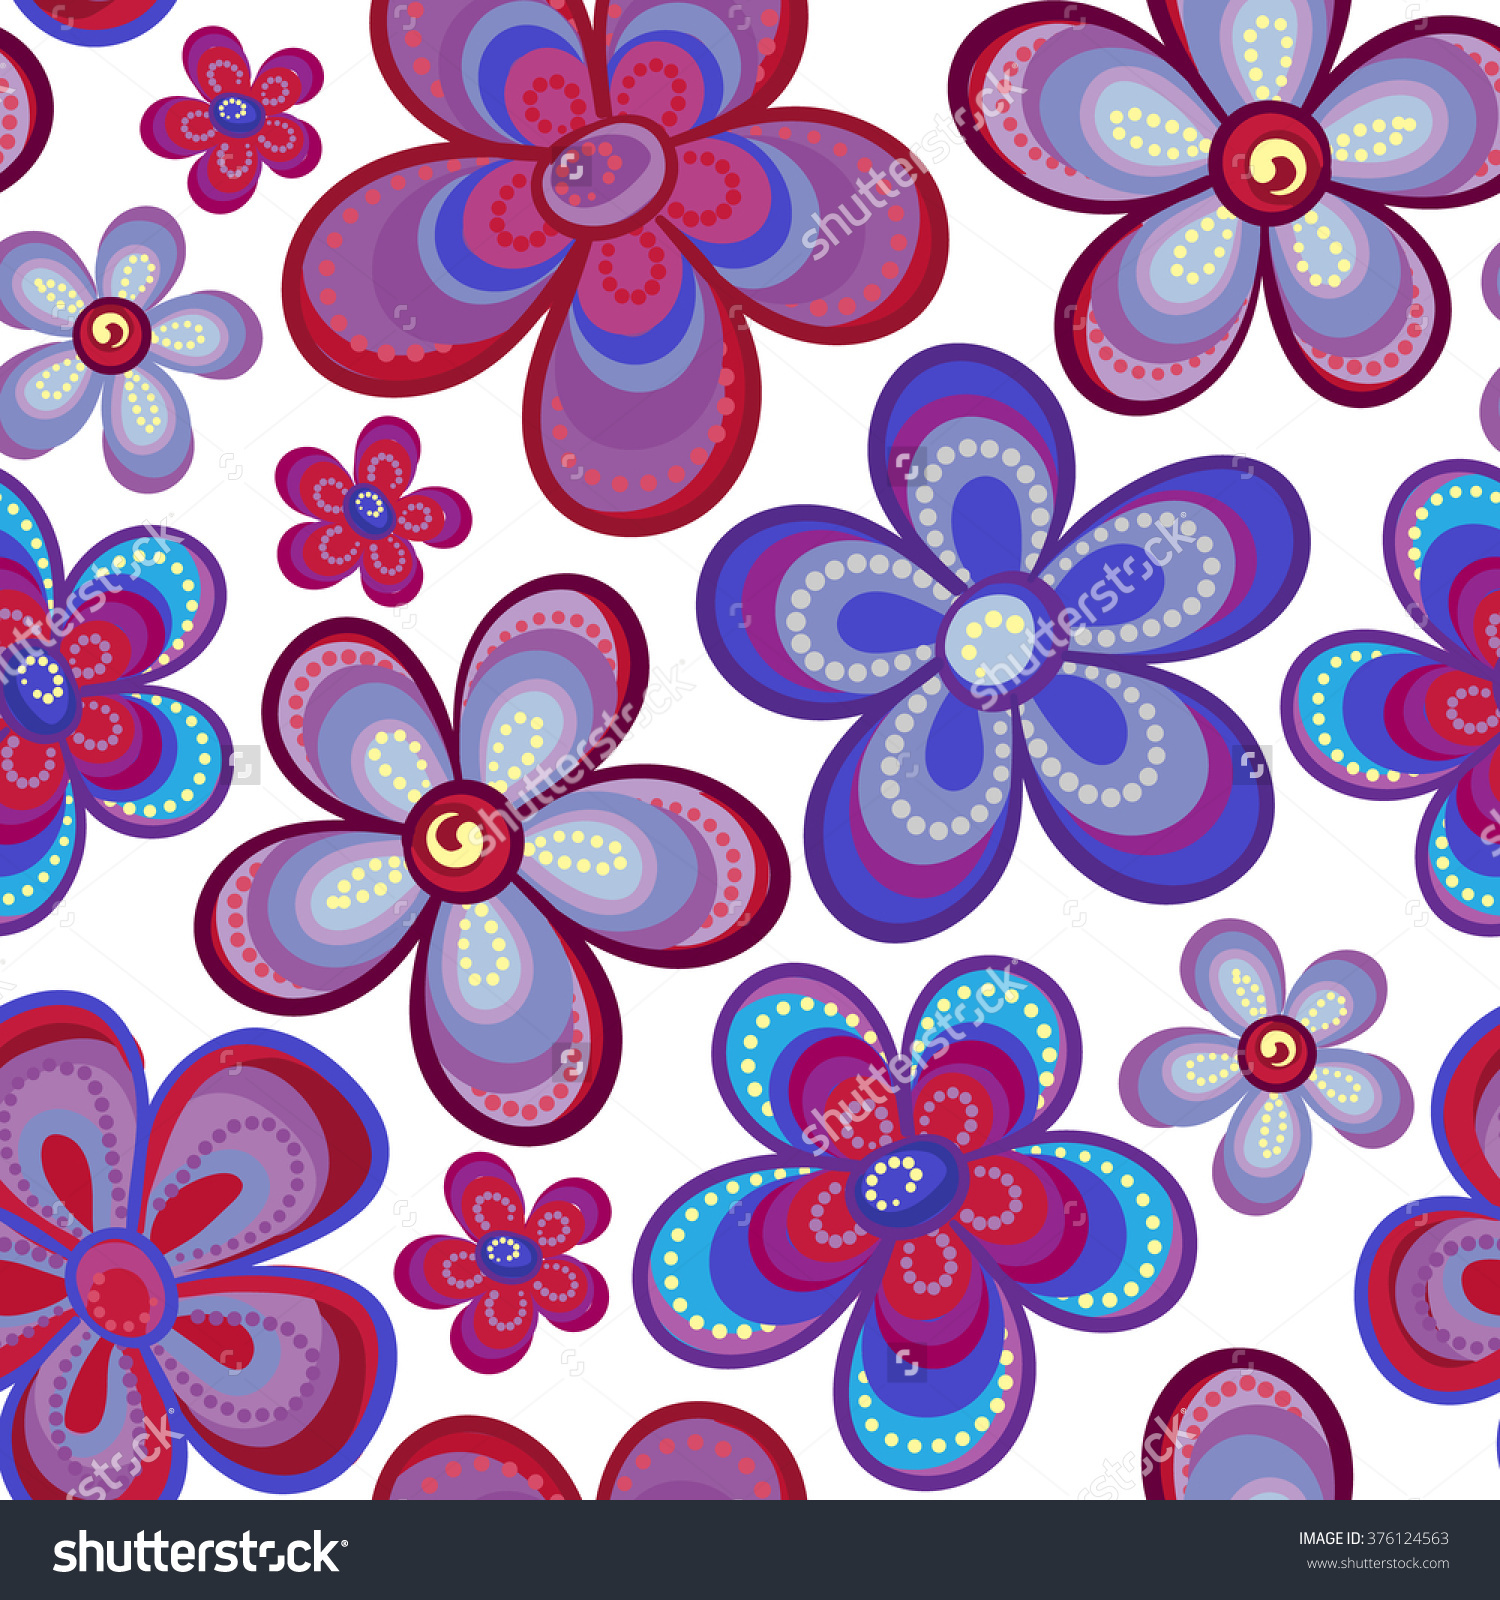 Seamless Floral Pattern In Bright Multiple Colors. Colorful.